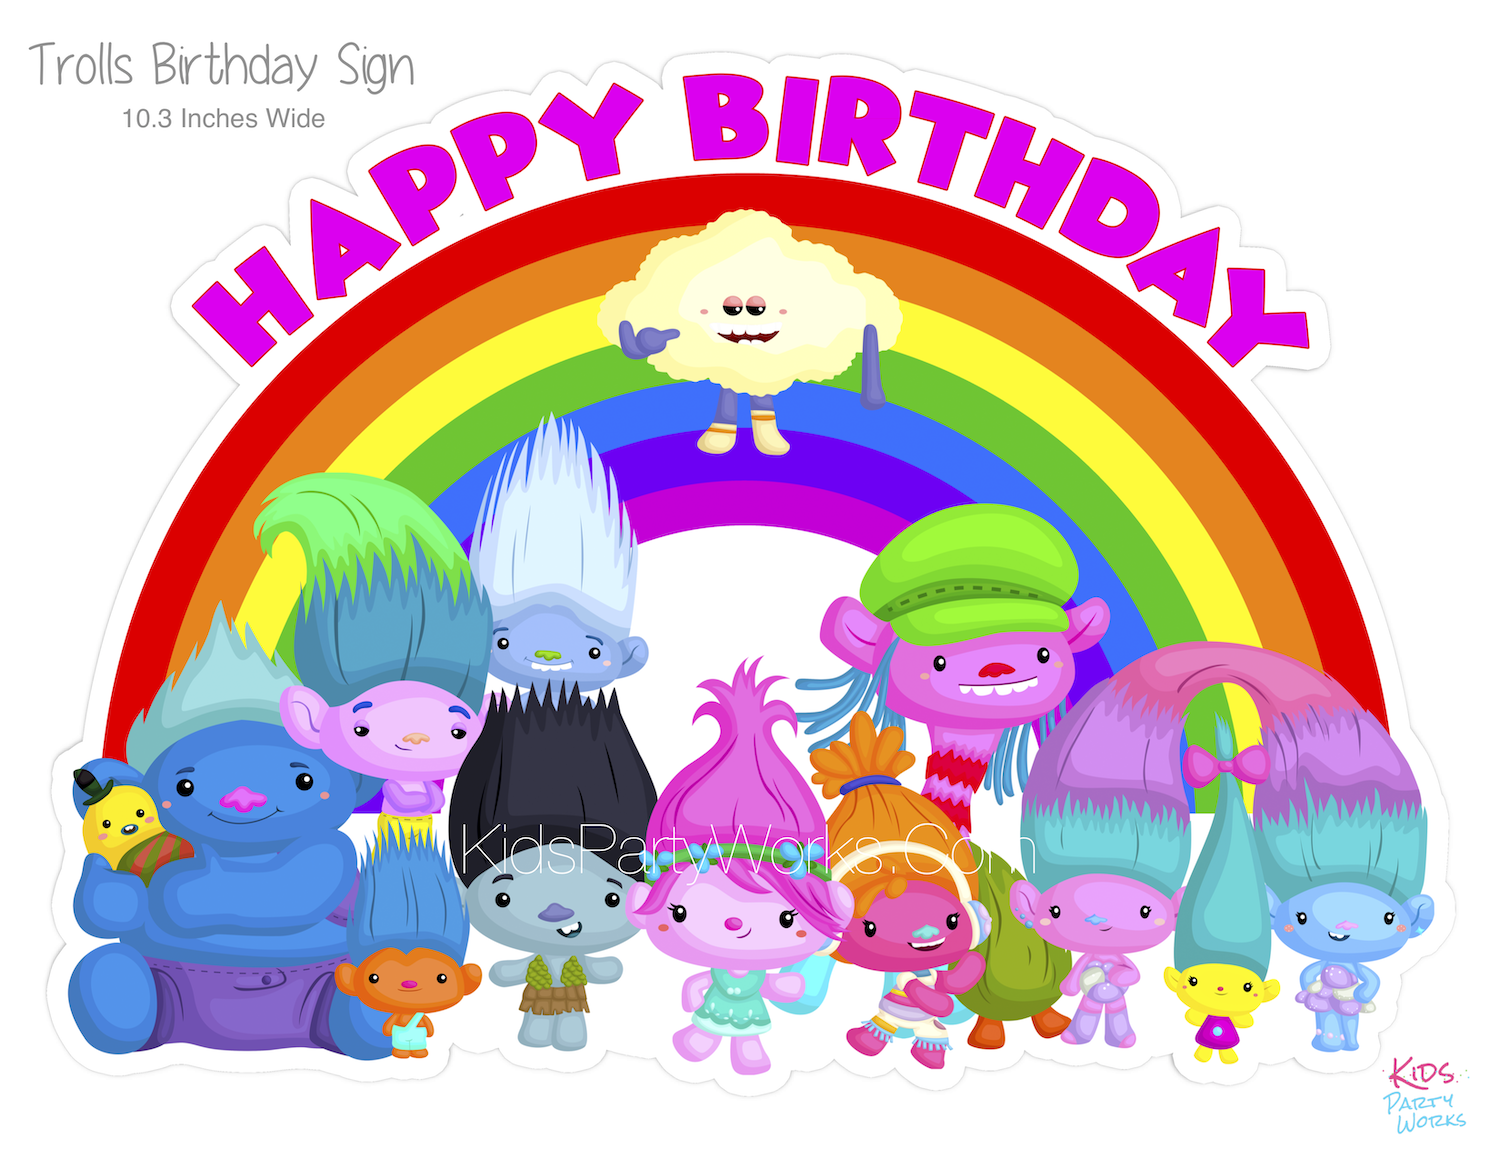 image regarding Printable Trolls Invitations referred to as Trolls Occasion